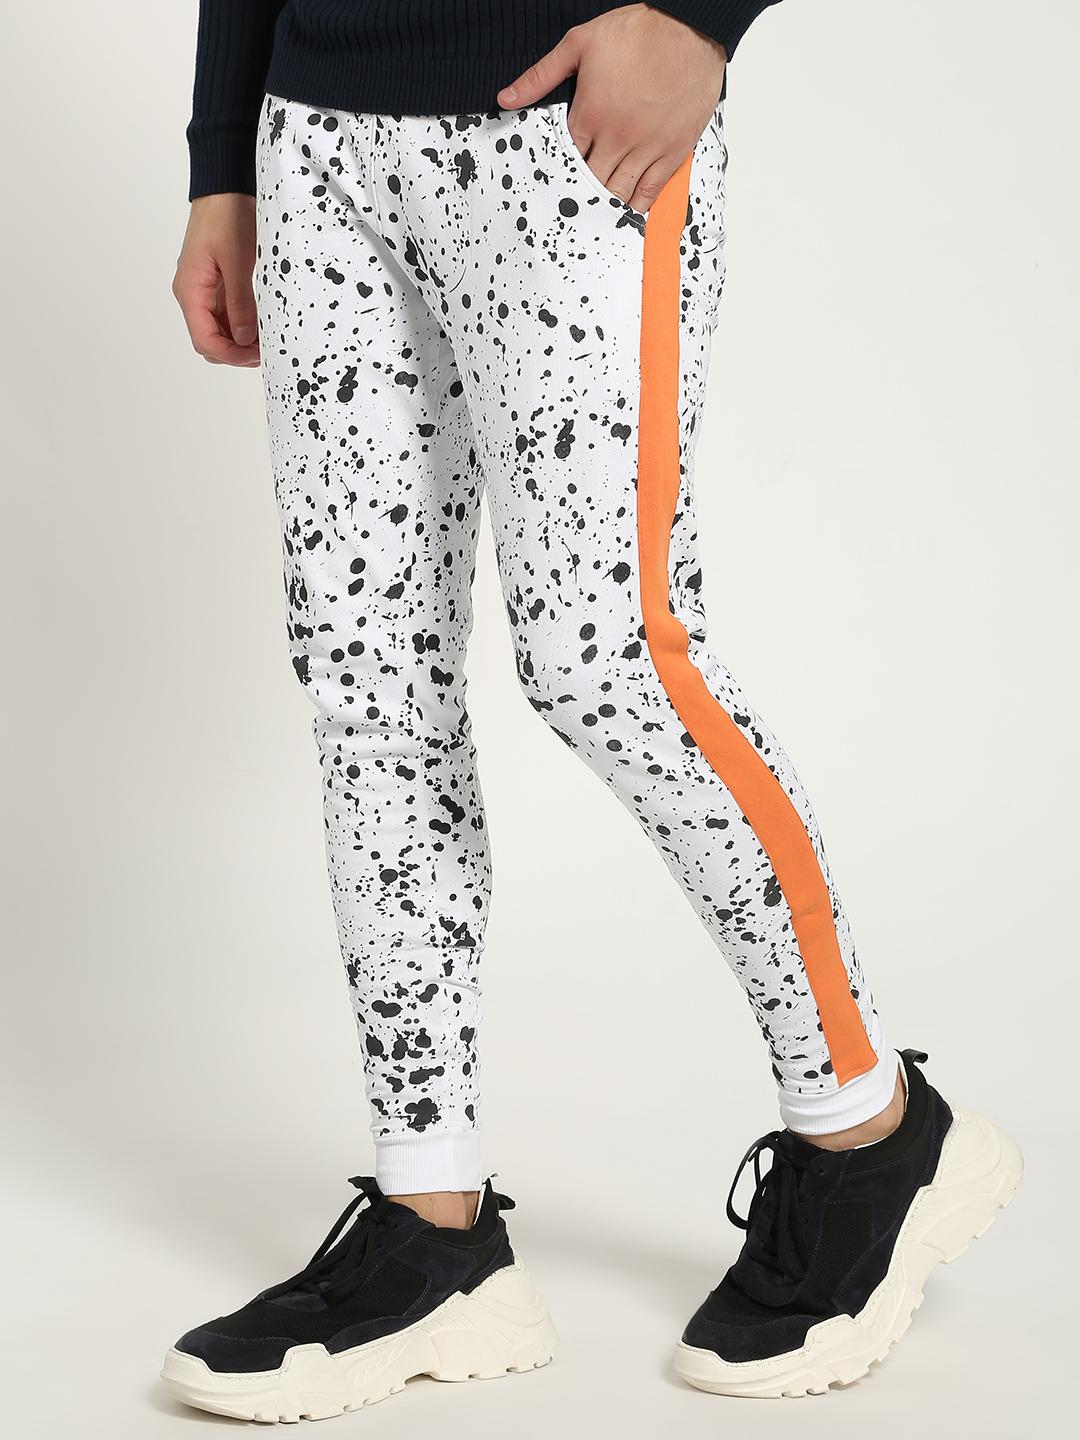 Kultprit White Splatter Print Side Tape Joggers 1